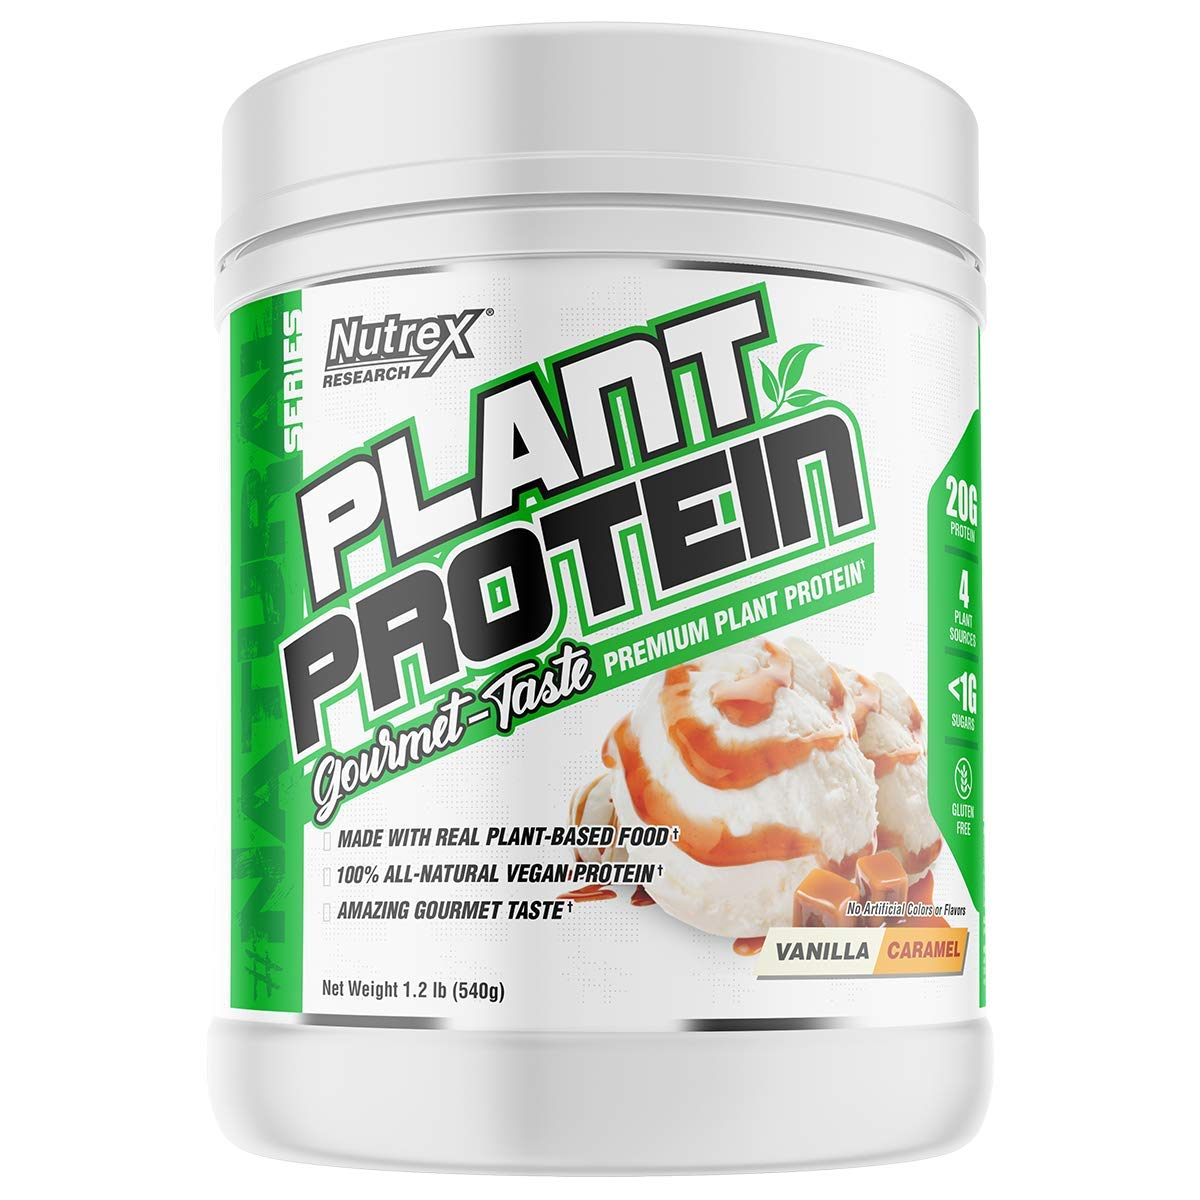 Nutrex Research Plant Protein | Great Tasting Vegan Plant Based Protein | No Artificial Flavors, Colors, or Sweeteners, Gluten Free, Lactose Free | 18 Servings (Vanilla Caramel)